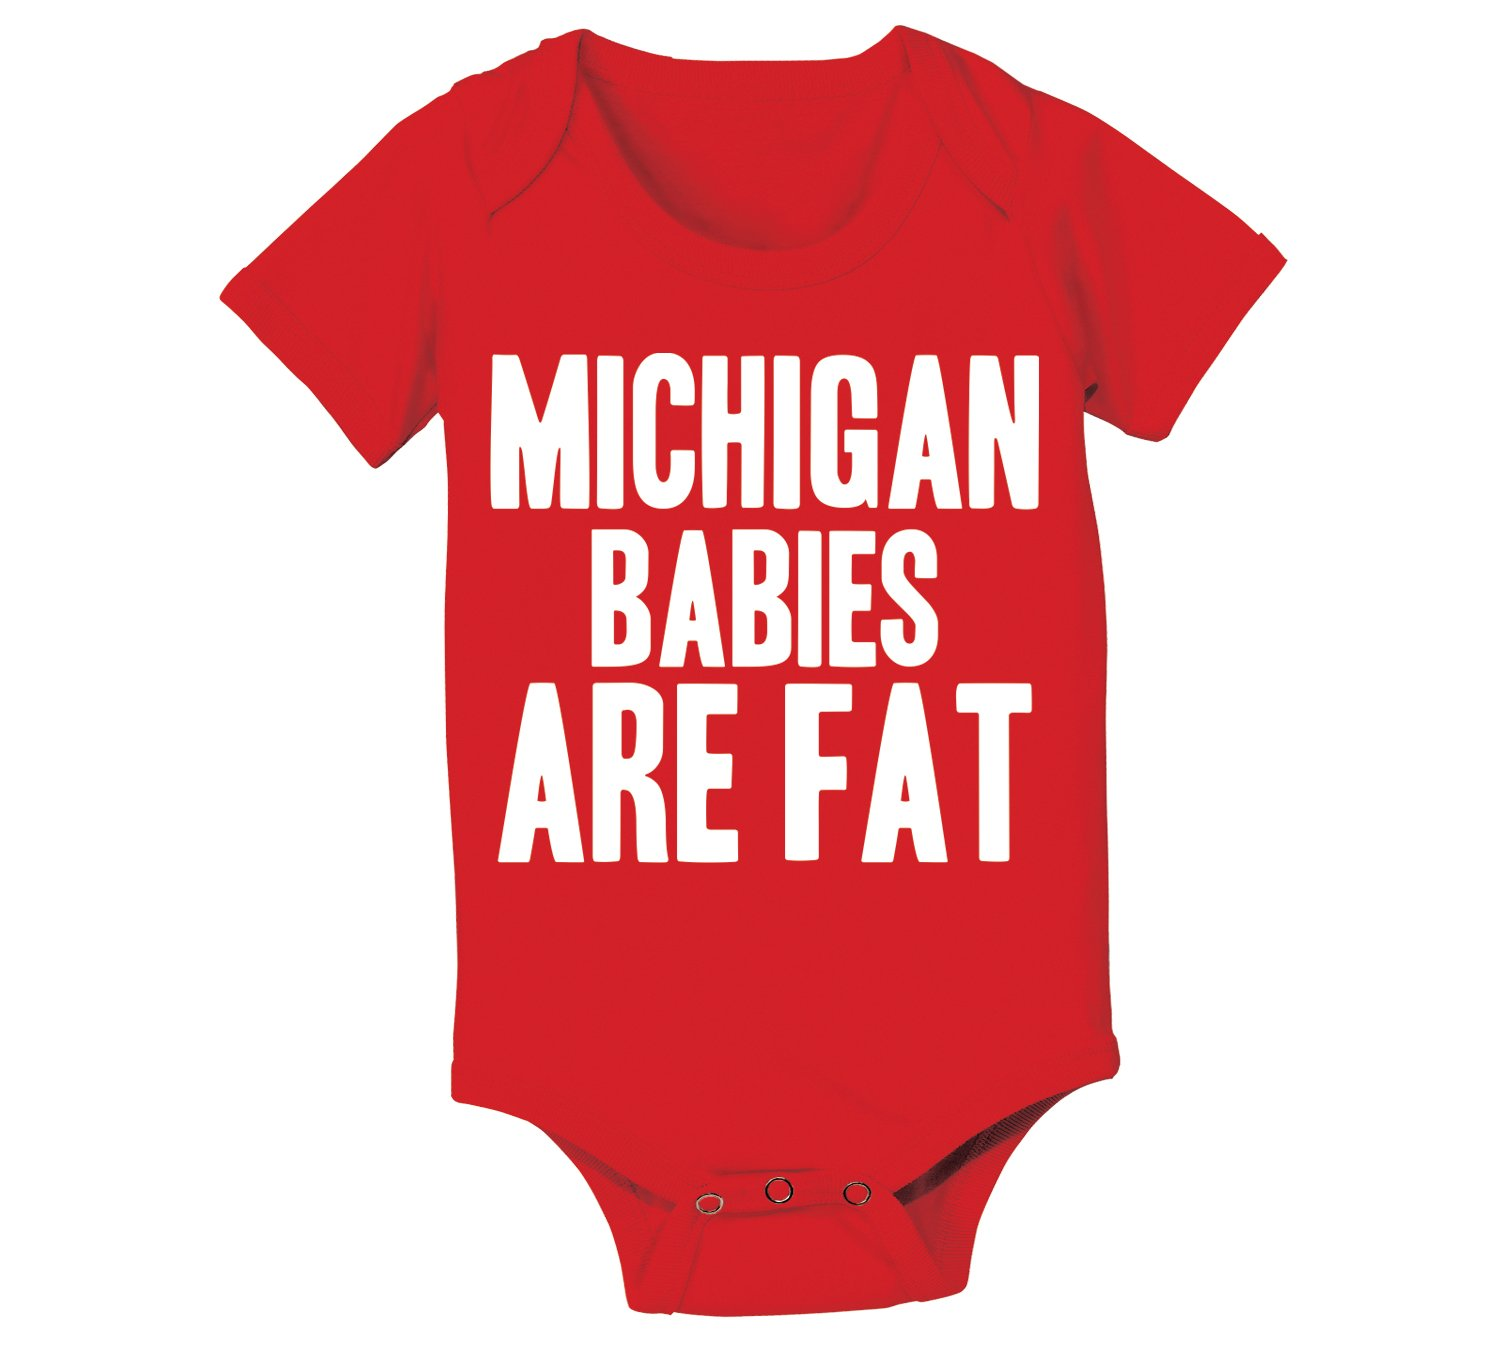 Michigan Babies Are Fat Funny Buckeyes State of Ohio Football Team Classic Hate M Sports OH IO Humor Baby One Piece 6 Months Red by Funny Threads Outlet (Image #1)